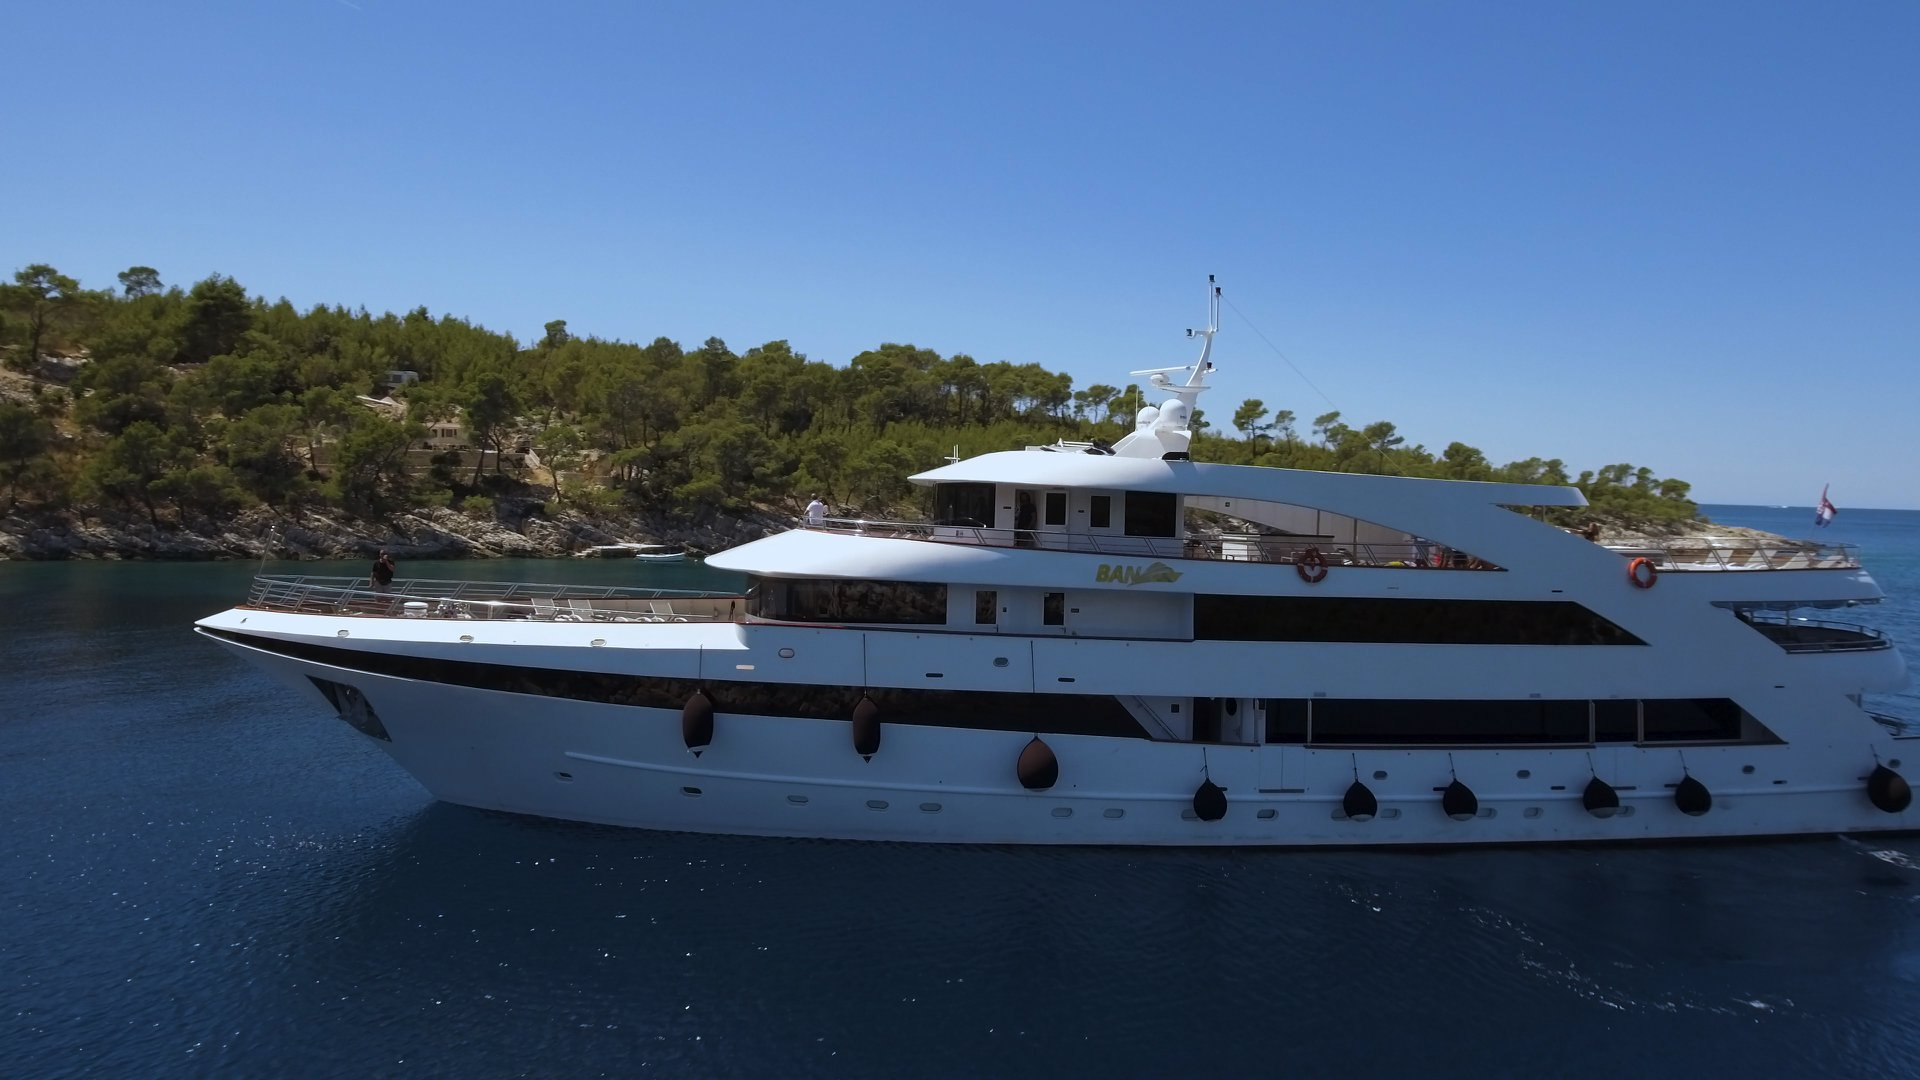 Adriatic Discovery Cruise from Dubrovnik to Split on Ban 5